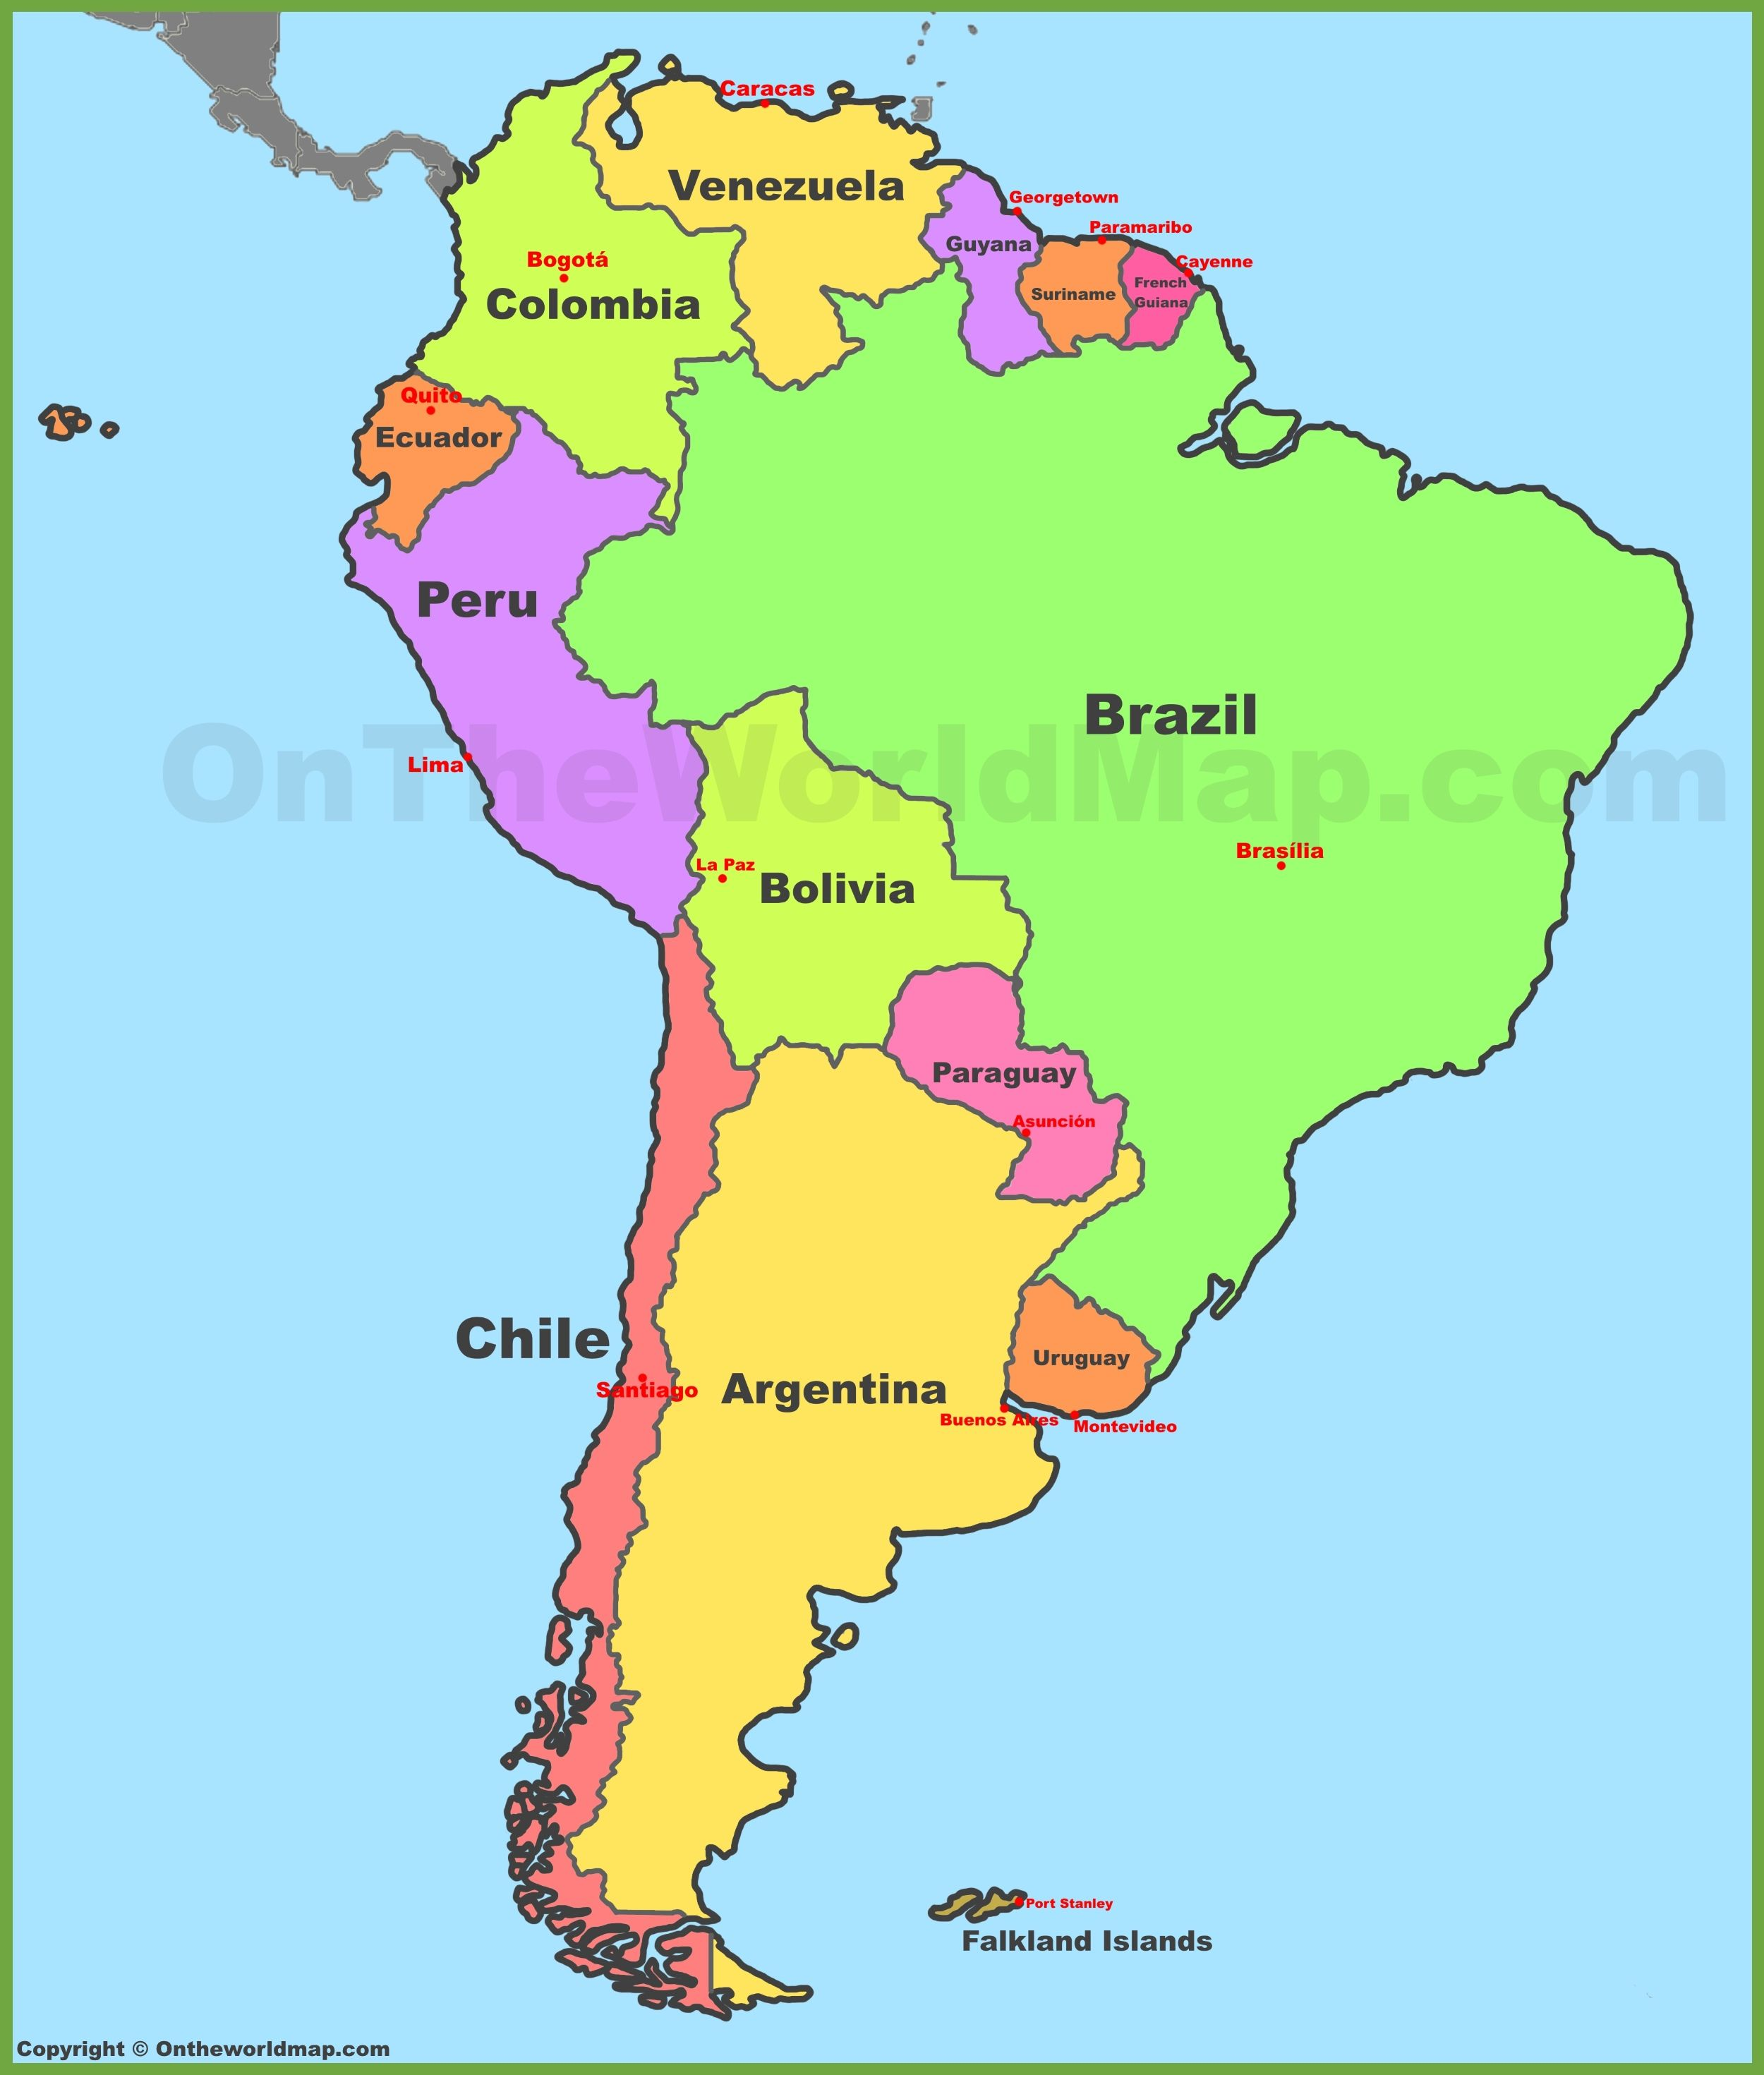 Map Of Countries In South America South America Pinterest